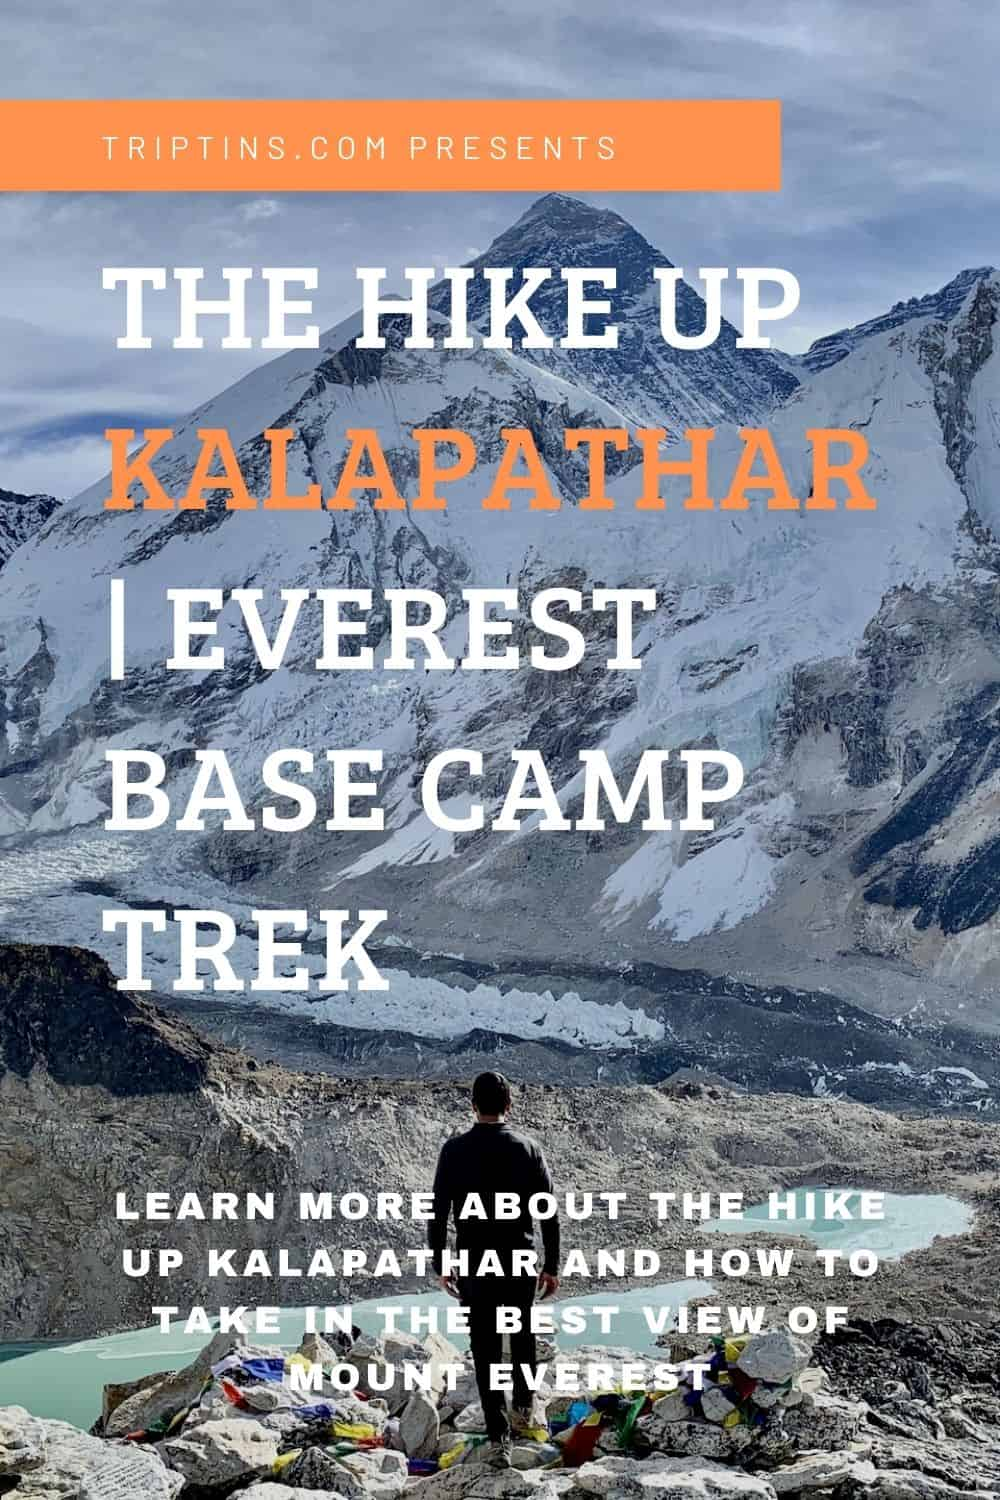 Kalapathar Hike Everest Base Camp Trek